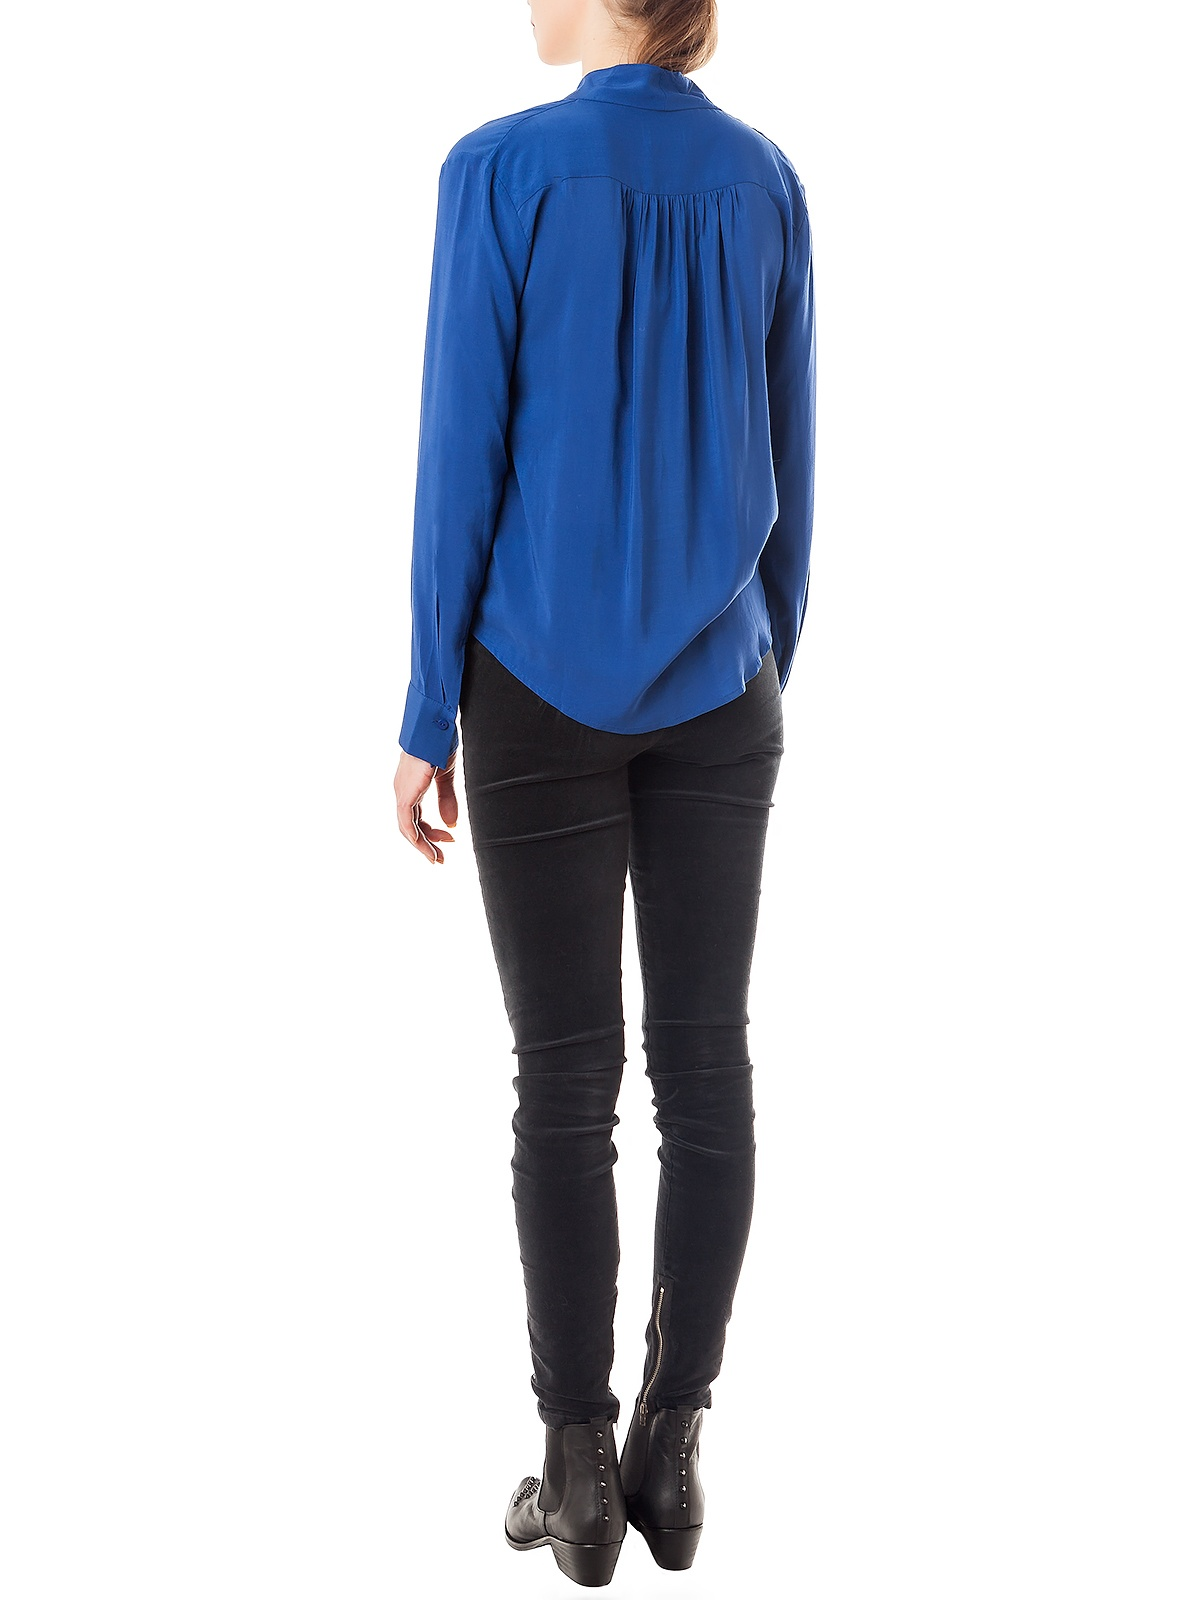 KAROL BLUE BLOUSE | GIRISSIMA.COM - Collectible fashion to love and to last